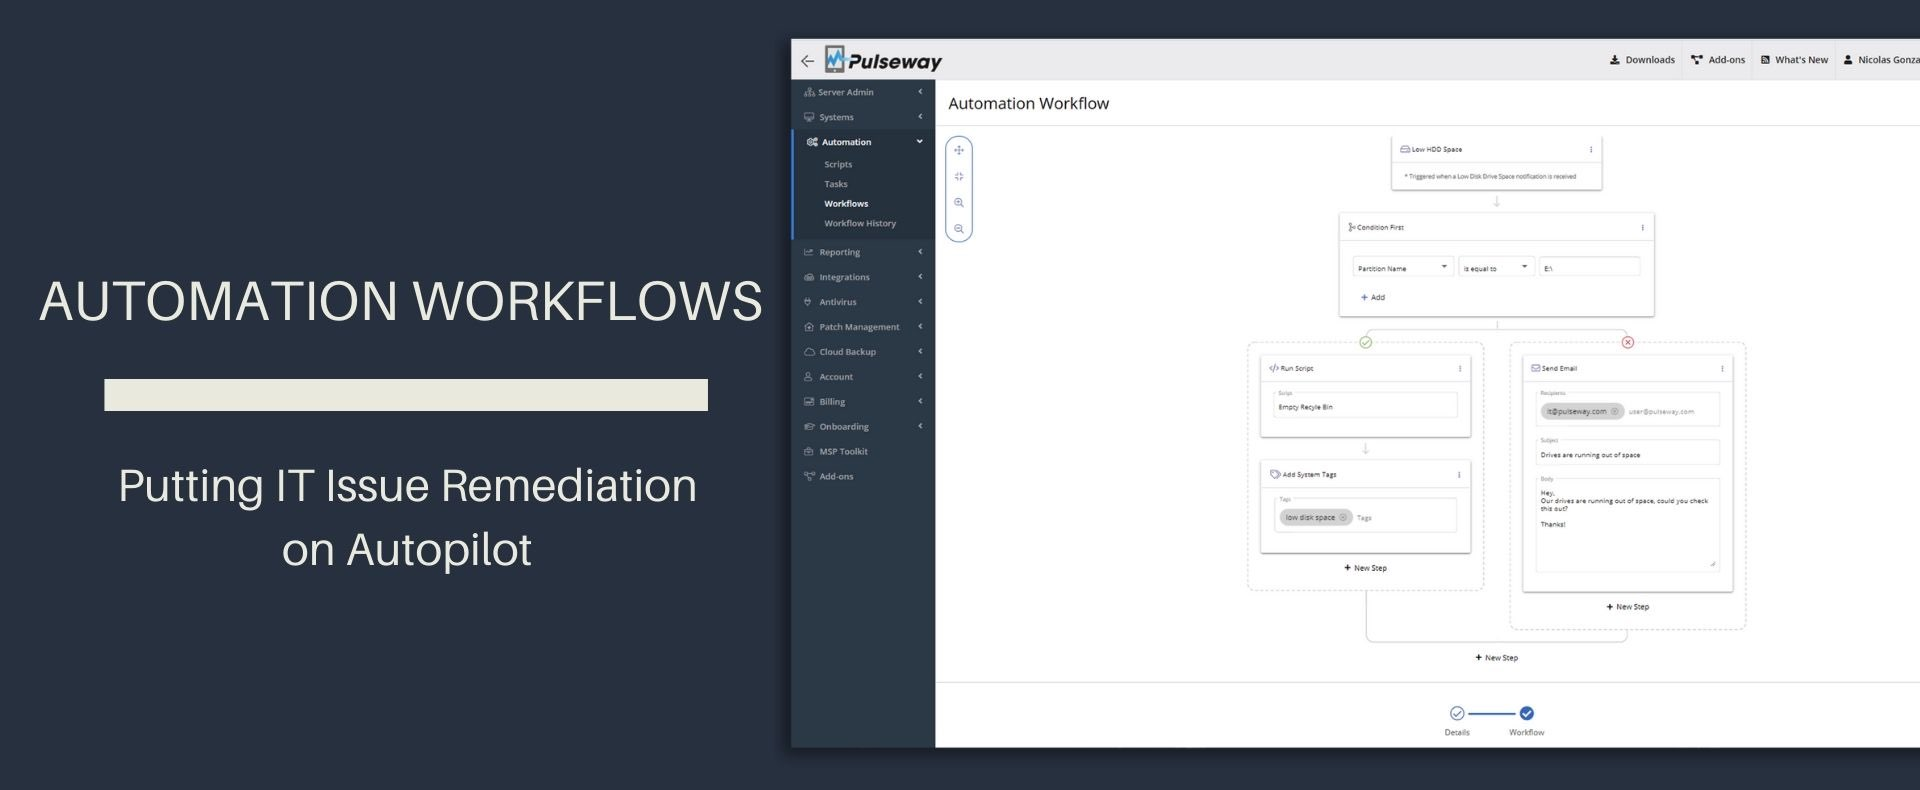 Pulseway Introduces Brand New Automation Workflows to Simplify the Worklife of its Customers and Auto-remediate Issues on User's Behalf